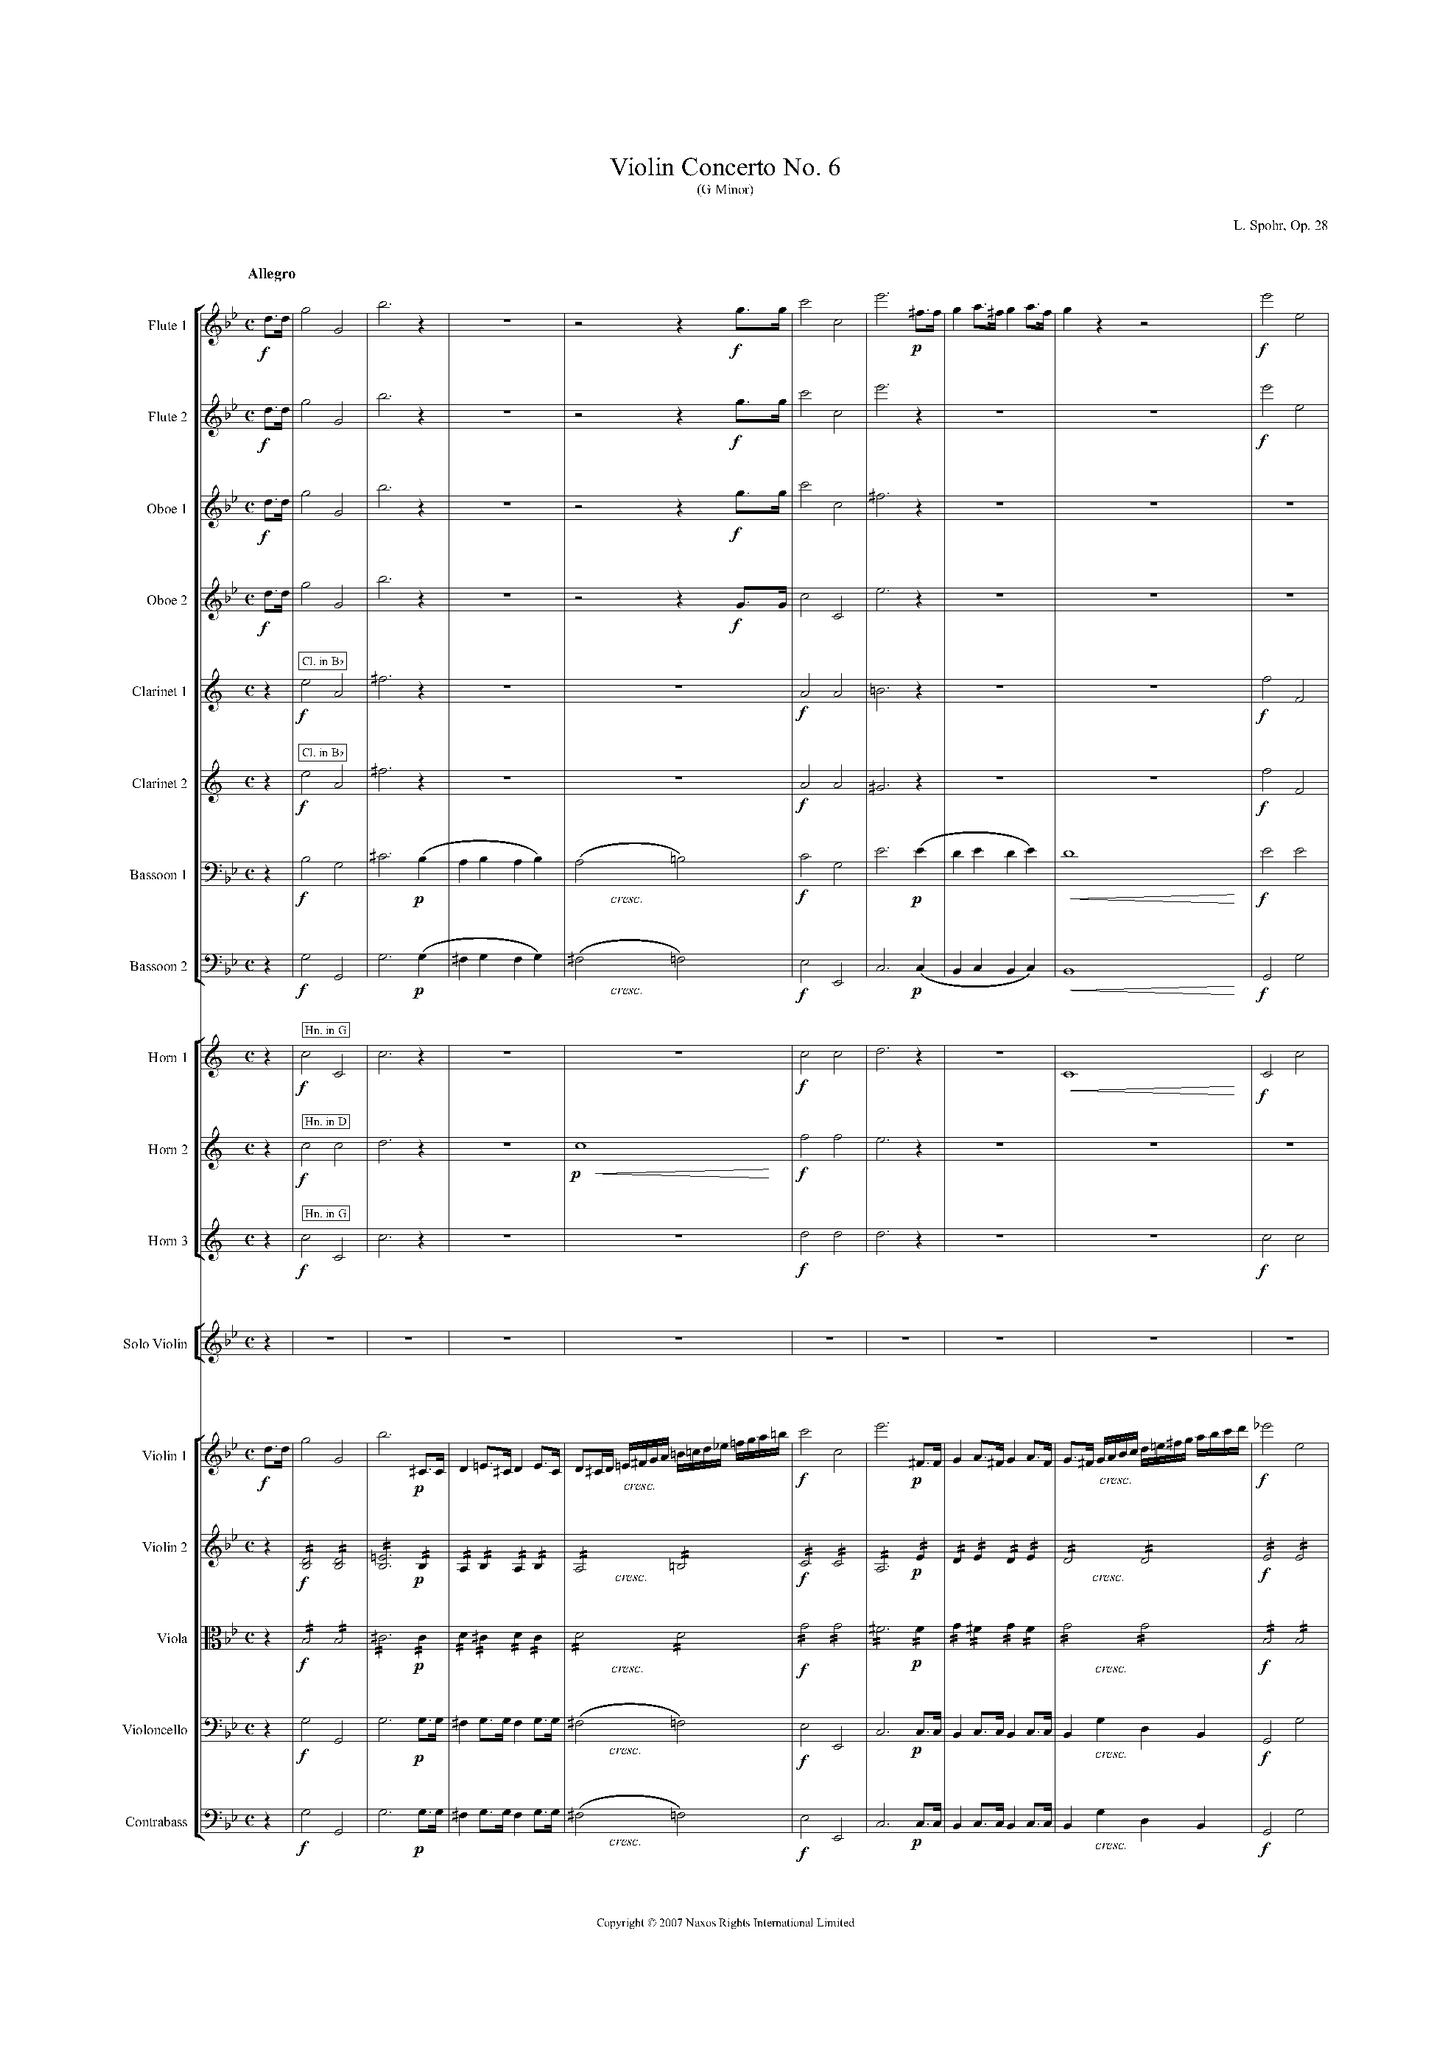 Louis Spohr: Violin Concerto No. 6 in G Minor, Op. 28 – full score (NXP009)